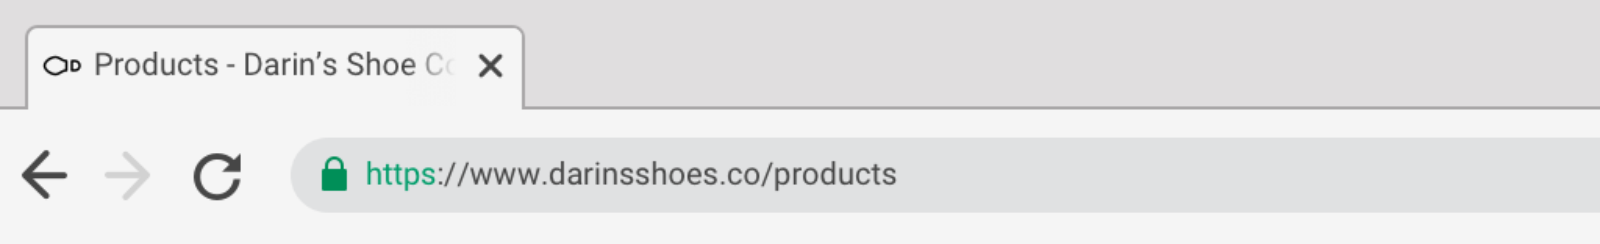 """Browser interface showing one tab labelled """"Products - Darin's Shoe Company"""""""